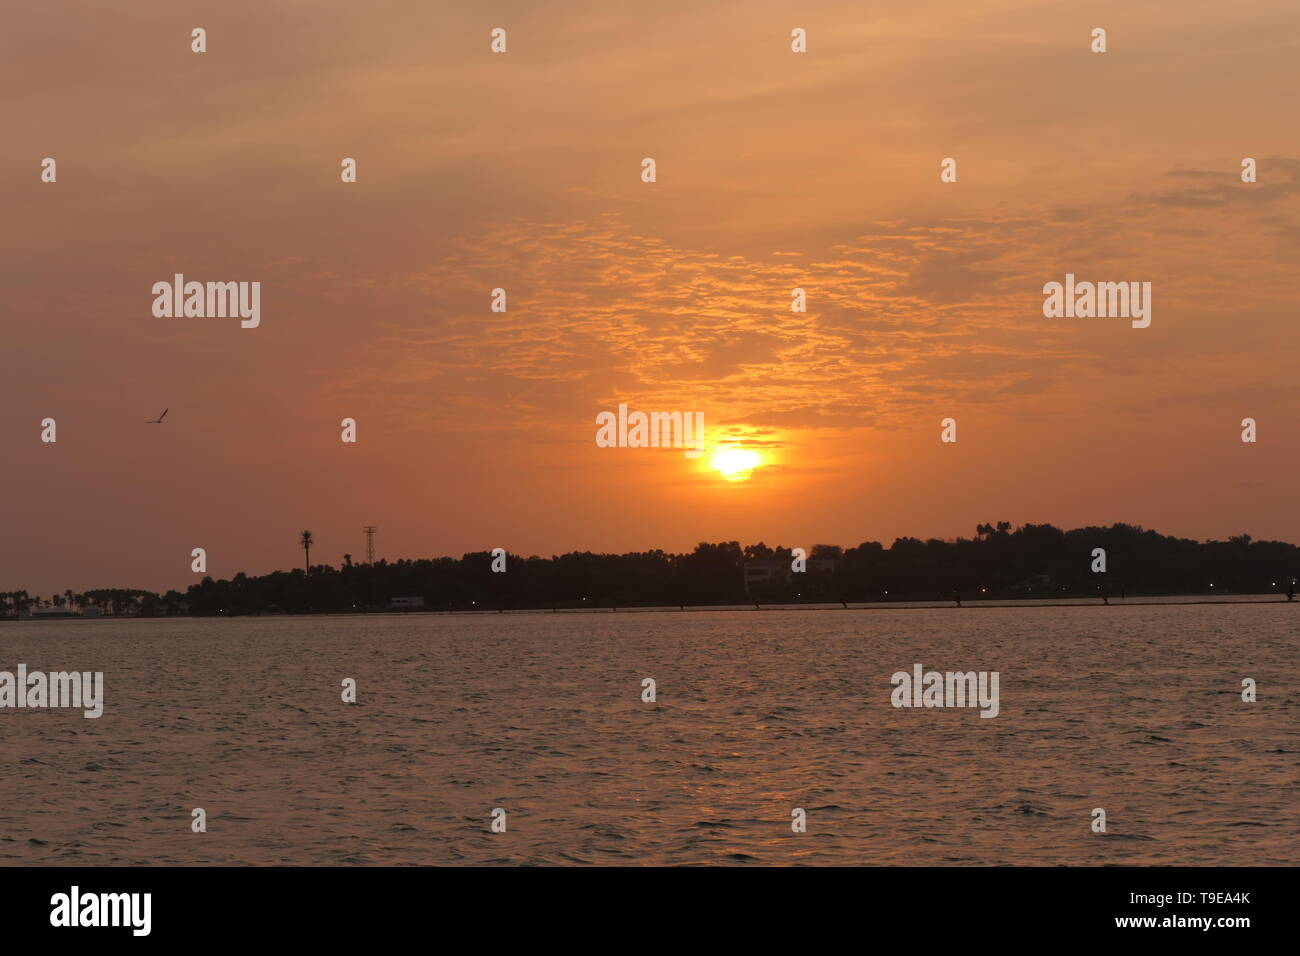 Natural and beautiful sunset with clear clouds in the background in Jeddah, Saudi Arabia - Stock Image